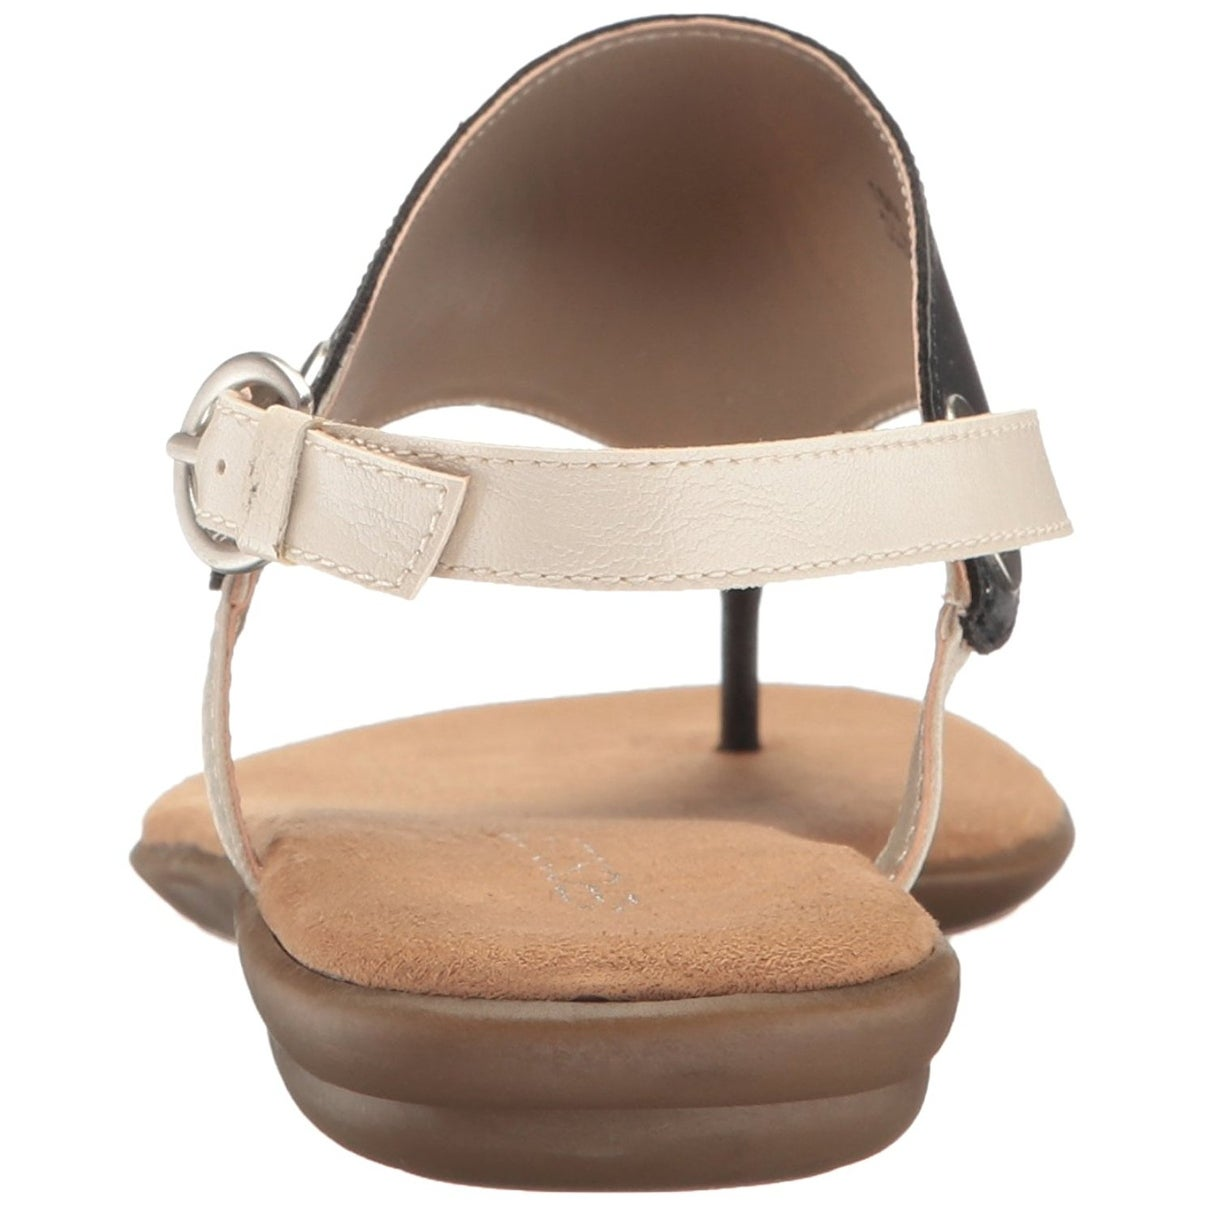 285510c5d23f Shop Aerosoles Womens Conchlusion Leather Open Toe Casual Ankle Strap  Sandals - Free Shipping Today - Overstock - 17009861